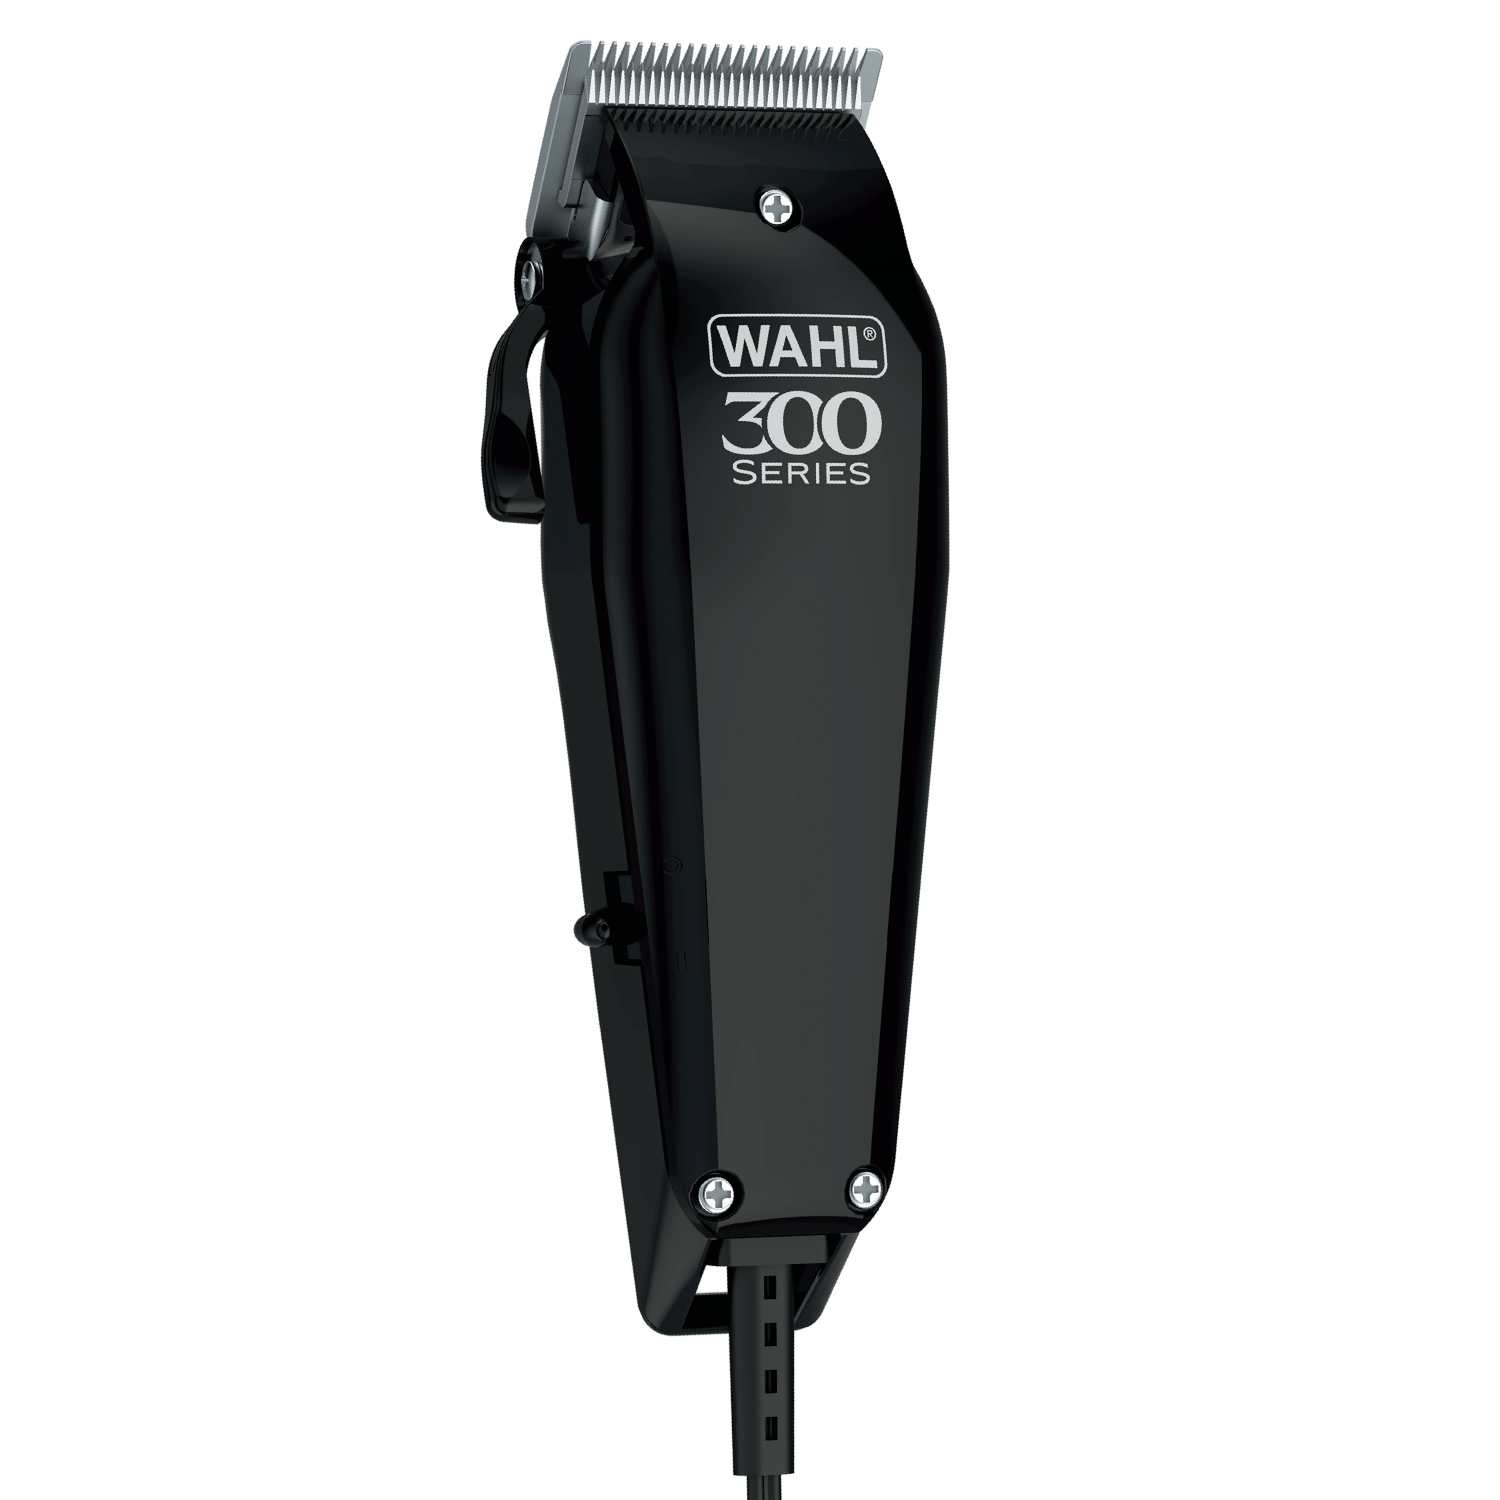 Wahl - Home Pro 300 Serie Hair Clipper (9247‐1316)